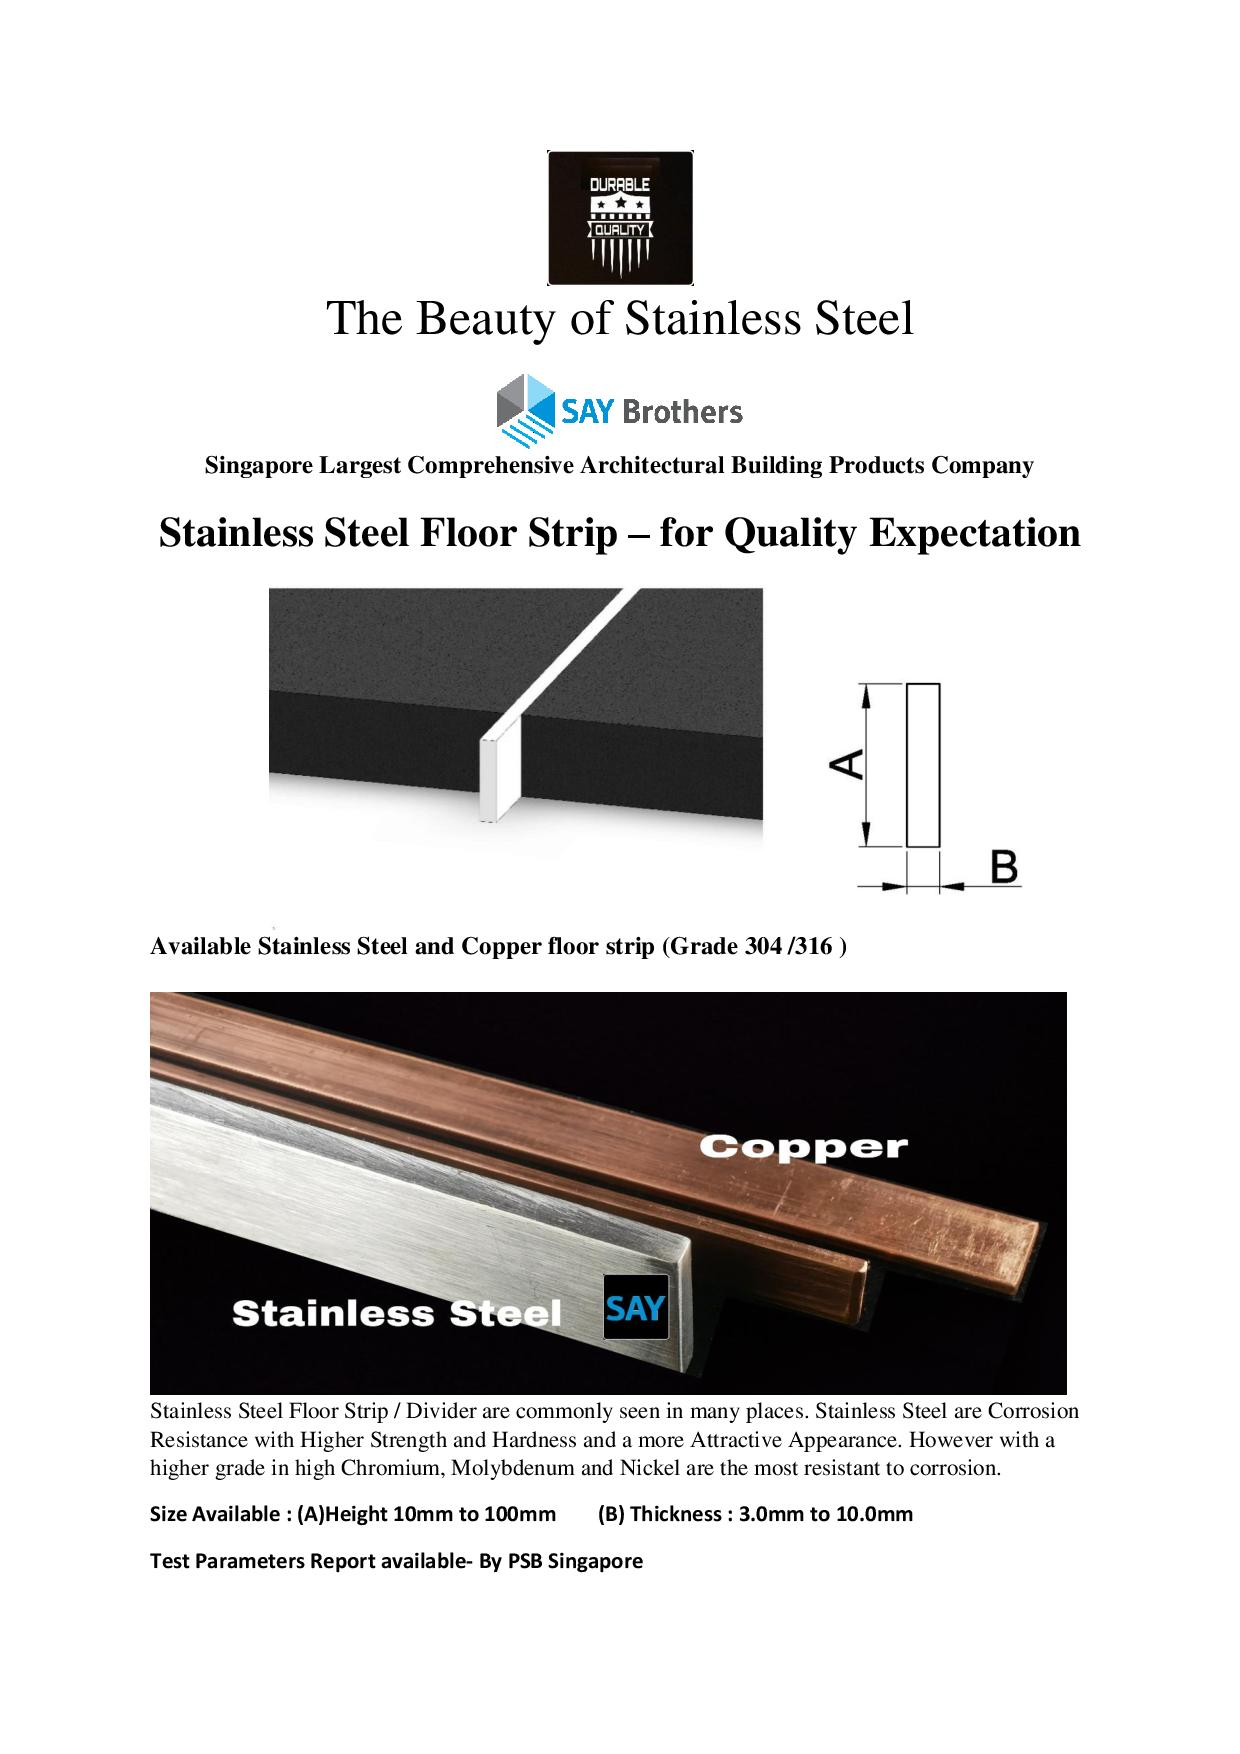 Stainless Steel Floor Strip